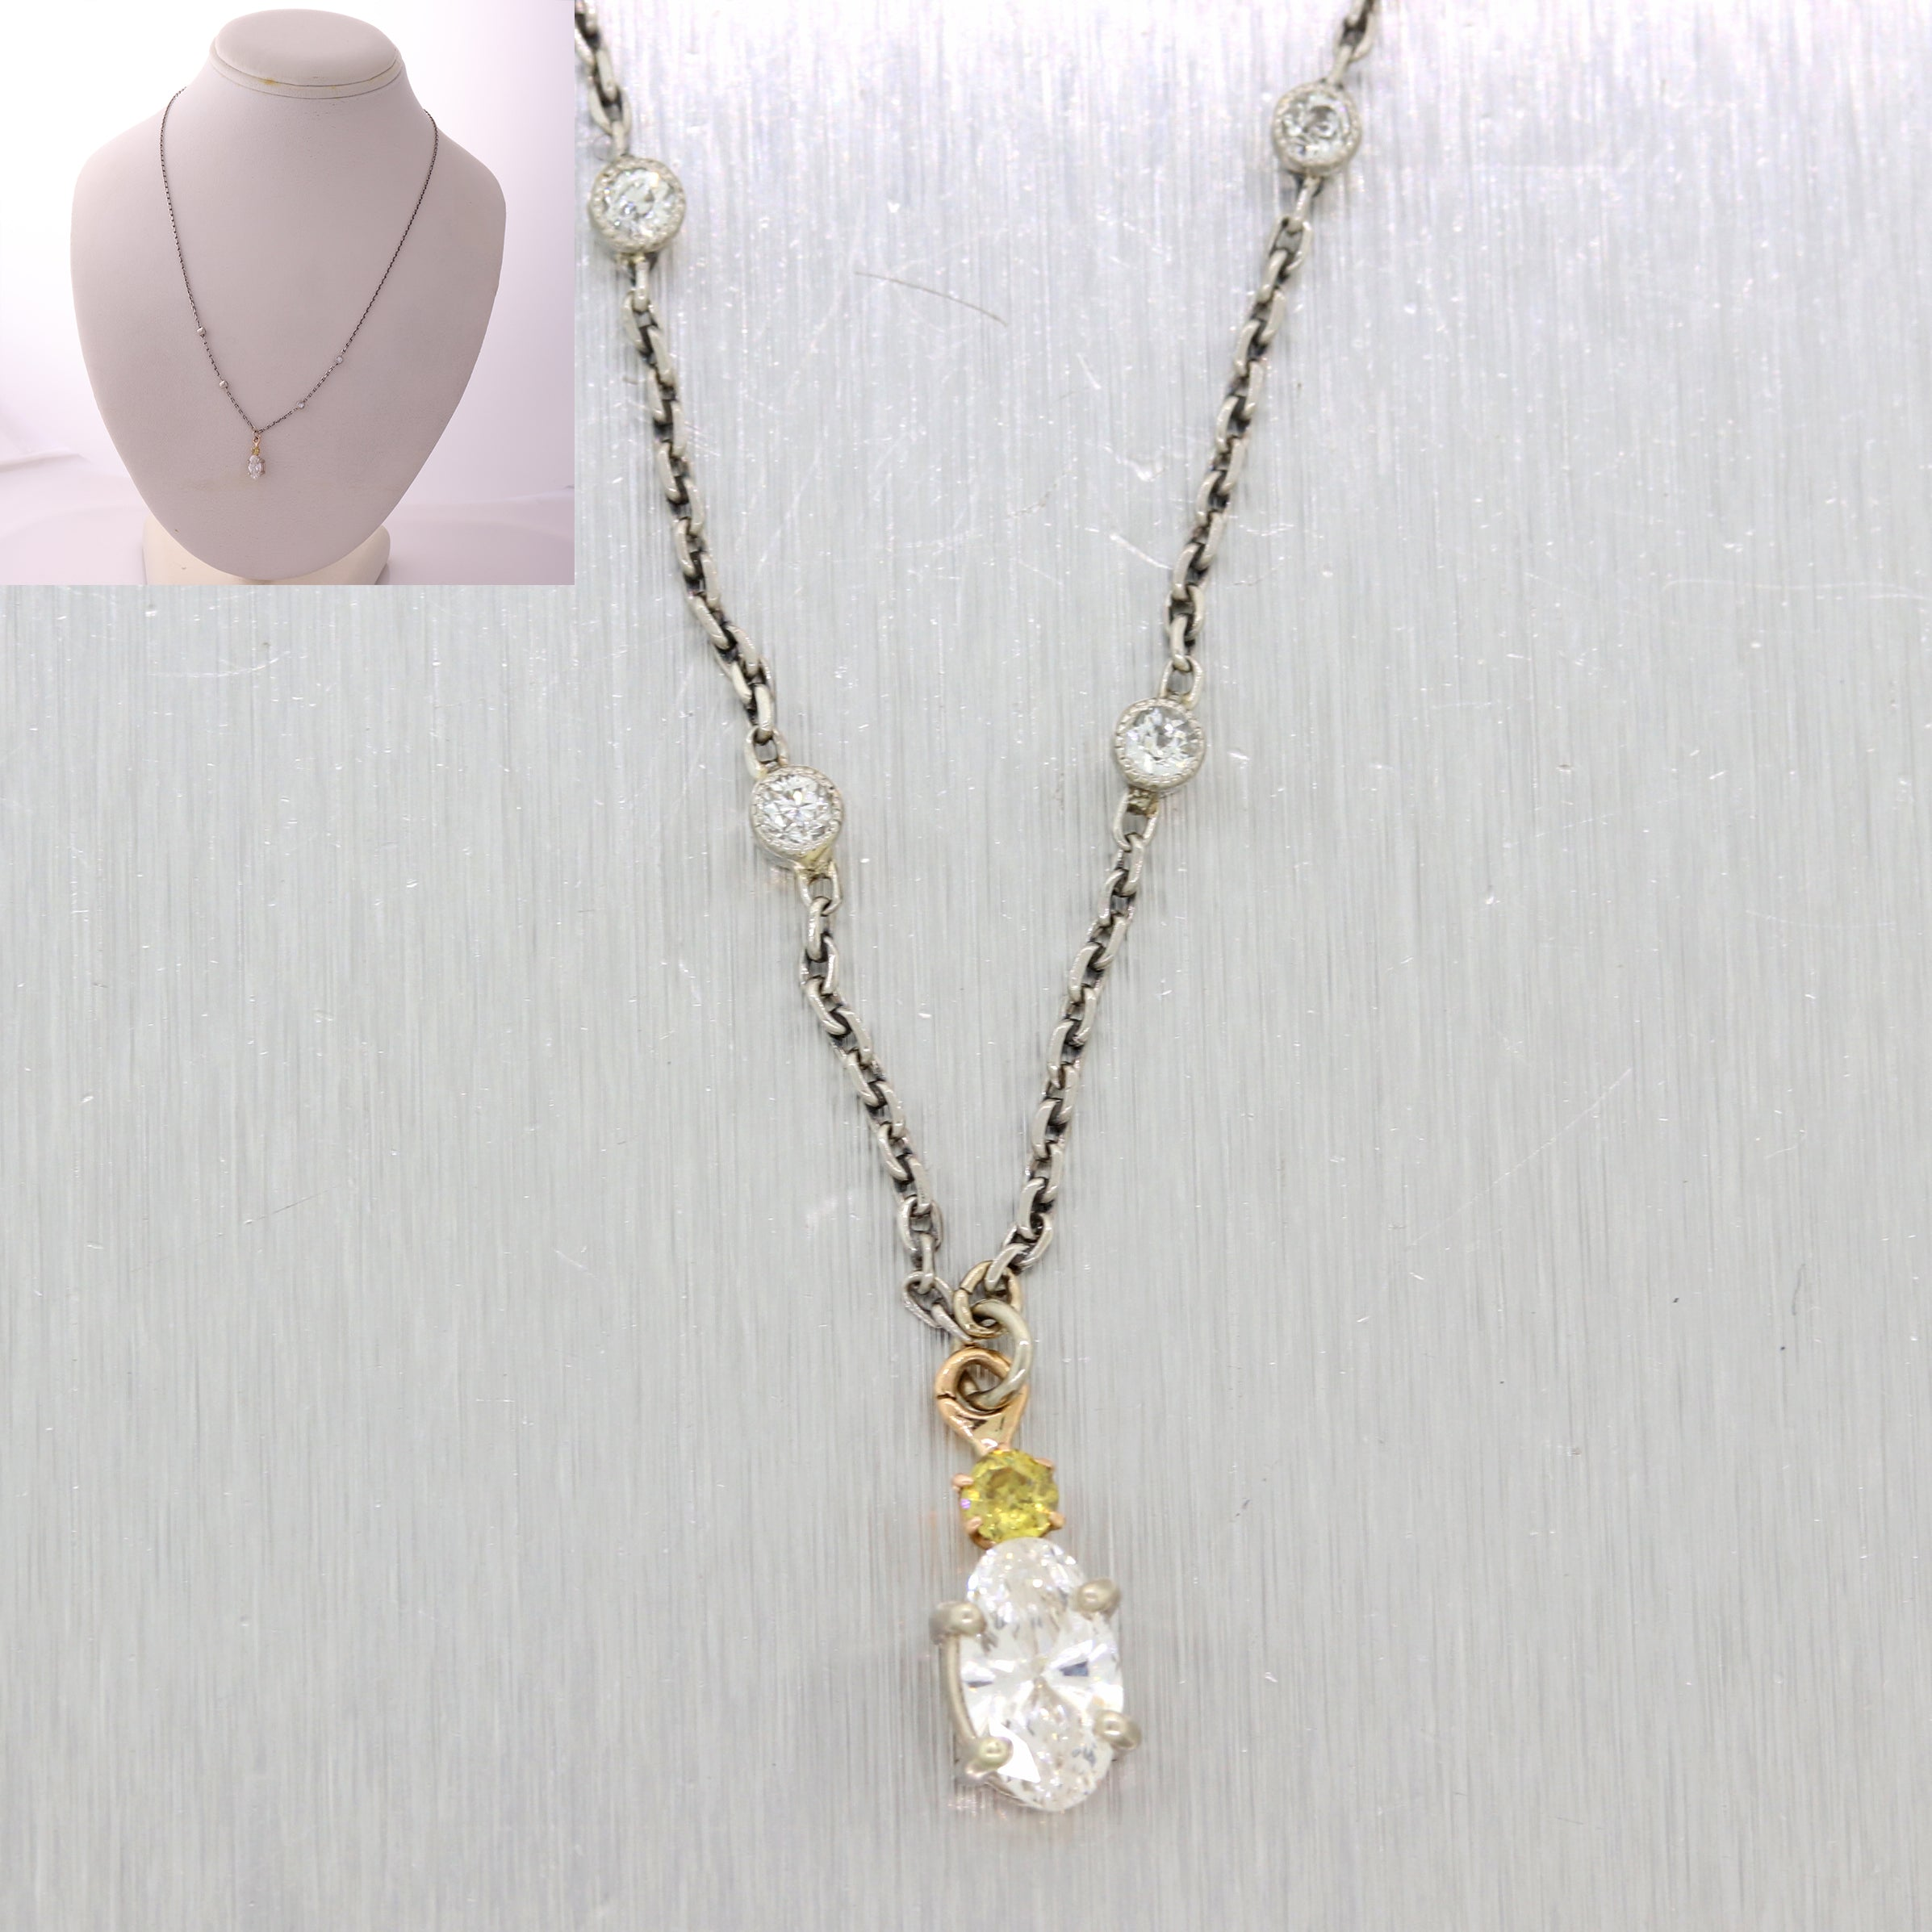 Vintage 18k White Gold .69ctw Oval Diamond Fancy Yellow Pendant Necklace N8